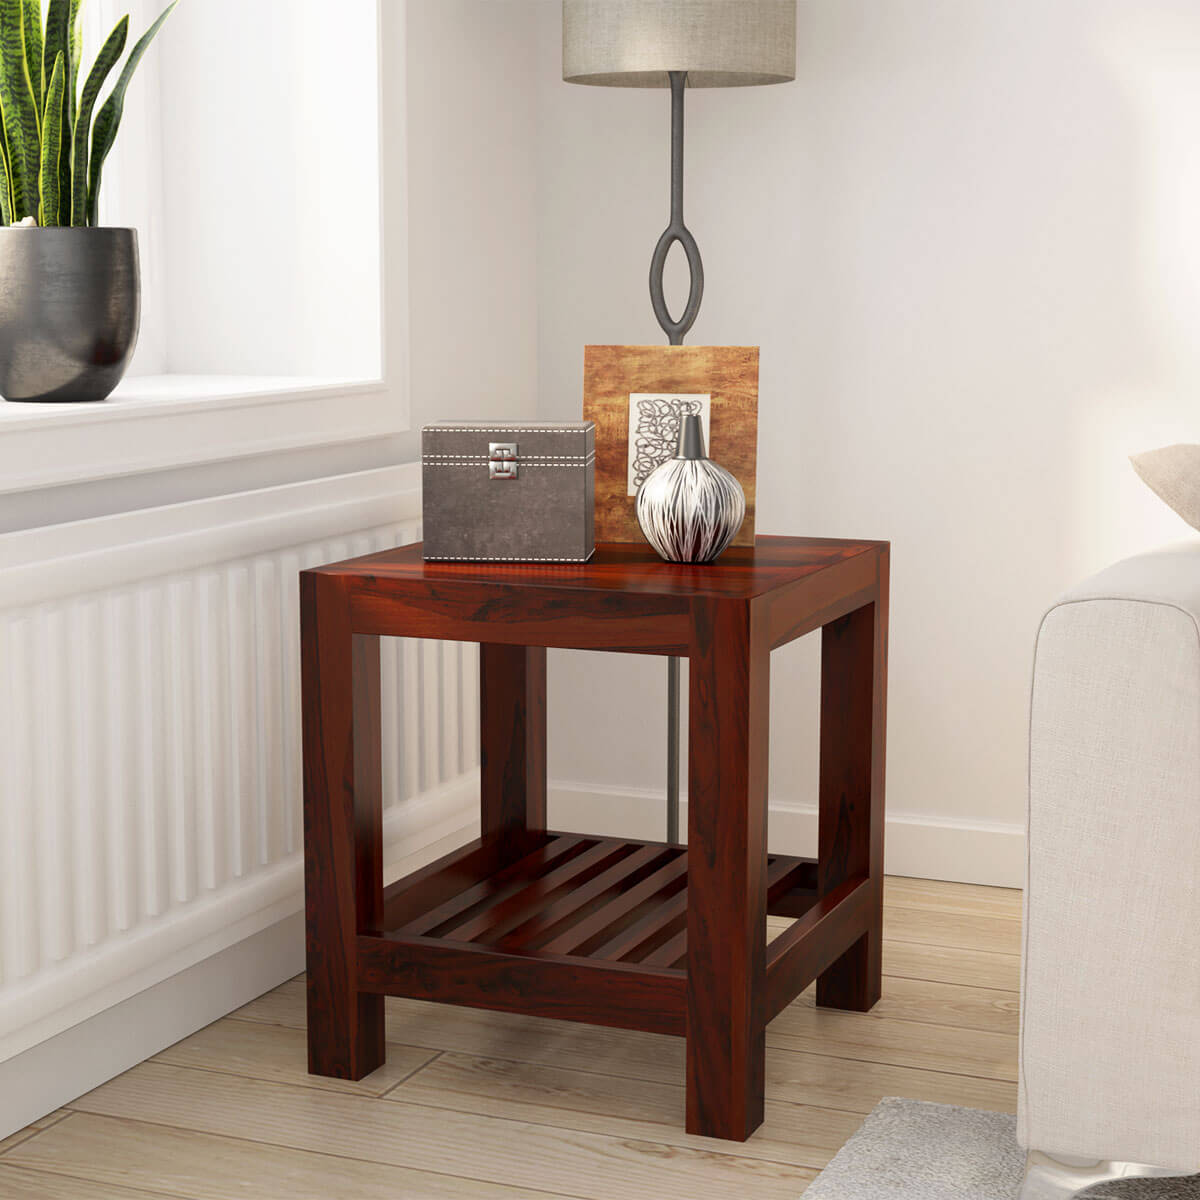 Portland Contemporary Solid Wood 2 Tier Rustic End Table